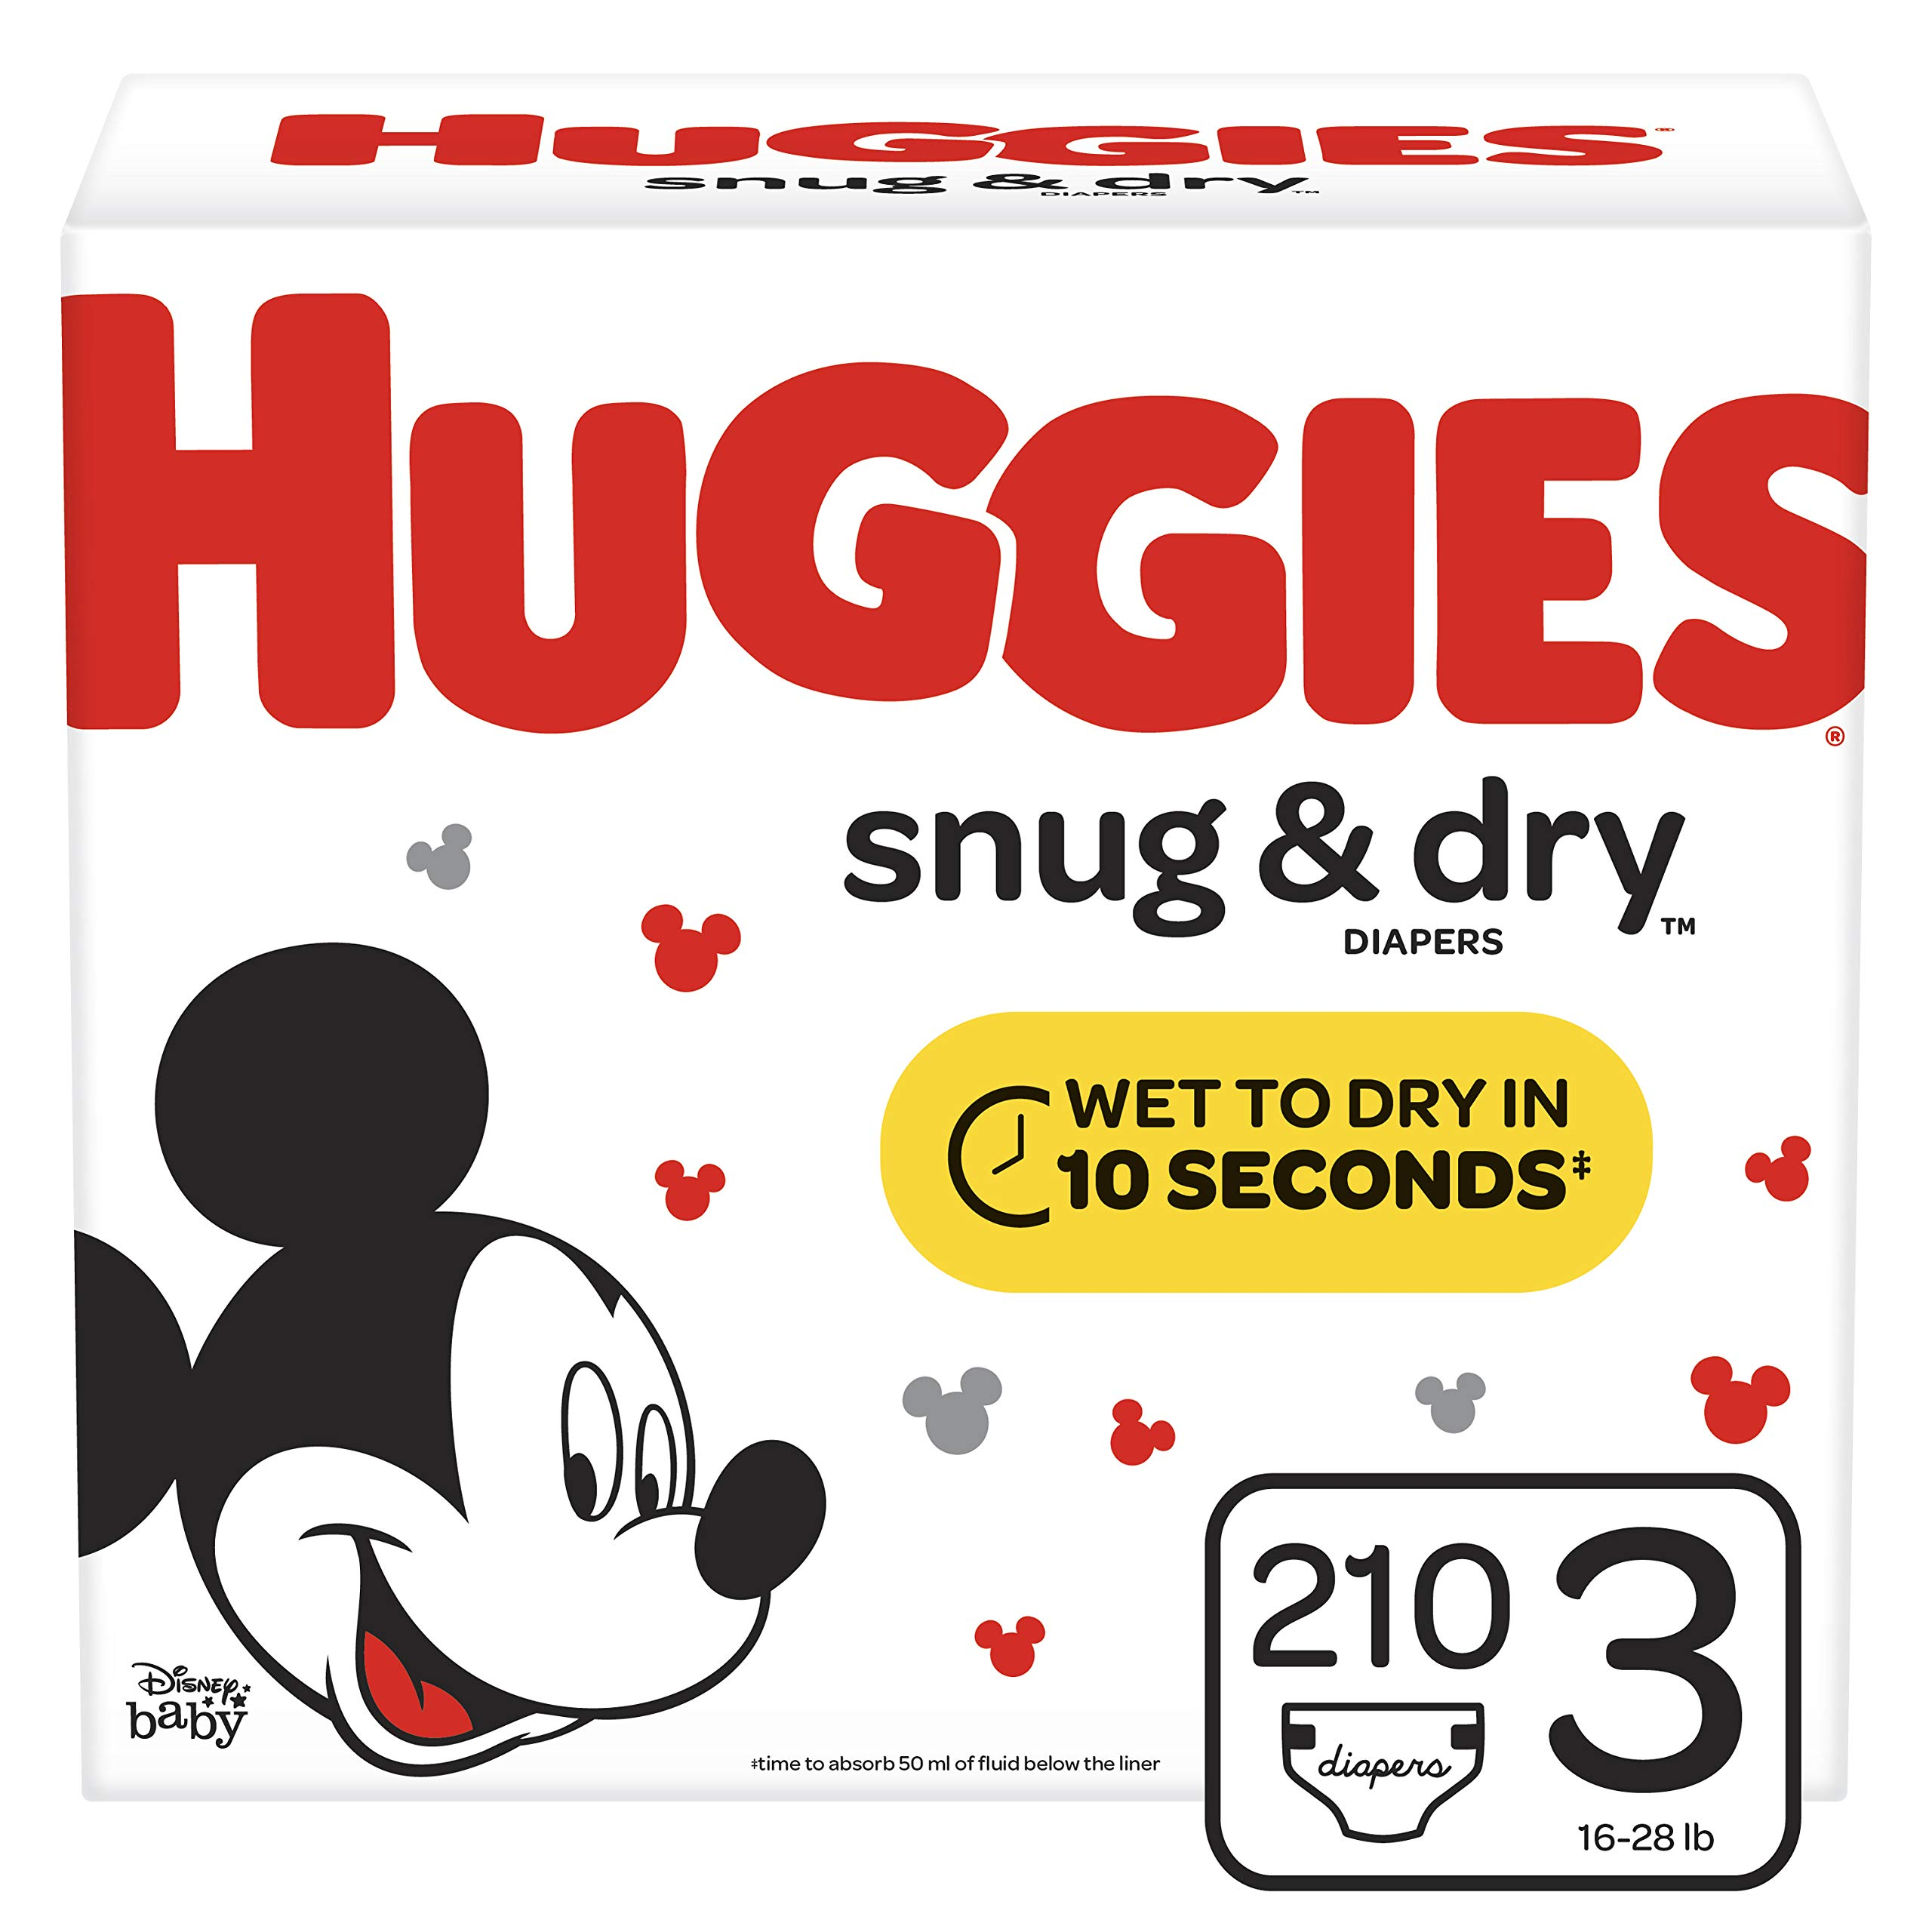 Huggies Snug & Dry Diapers, Size 3 (16-28 lb.), 210 Ct, One Month Supply (Packaging May Vary) by HUGGIES